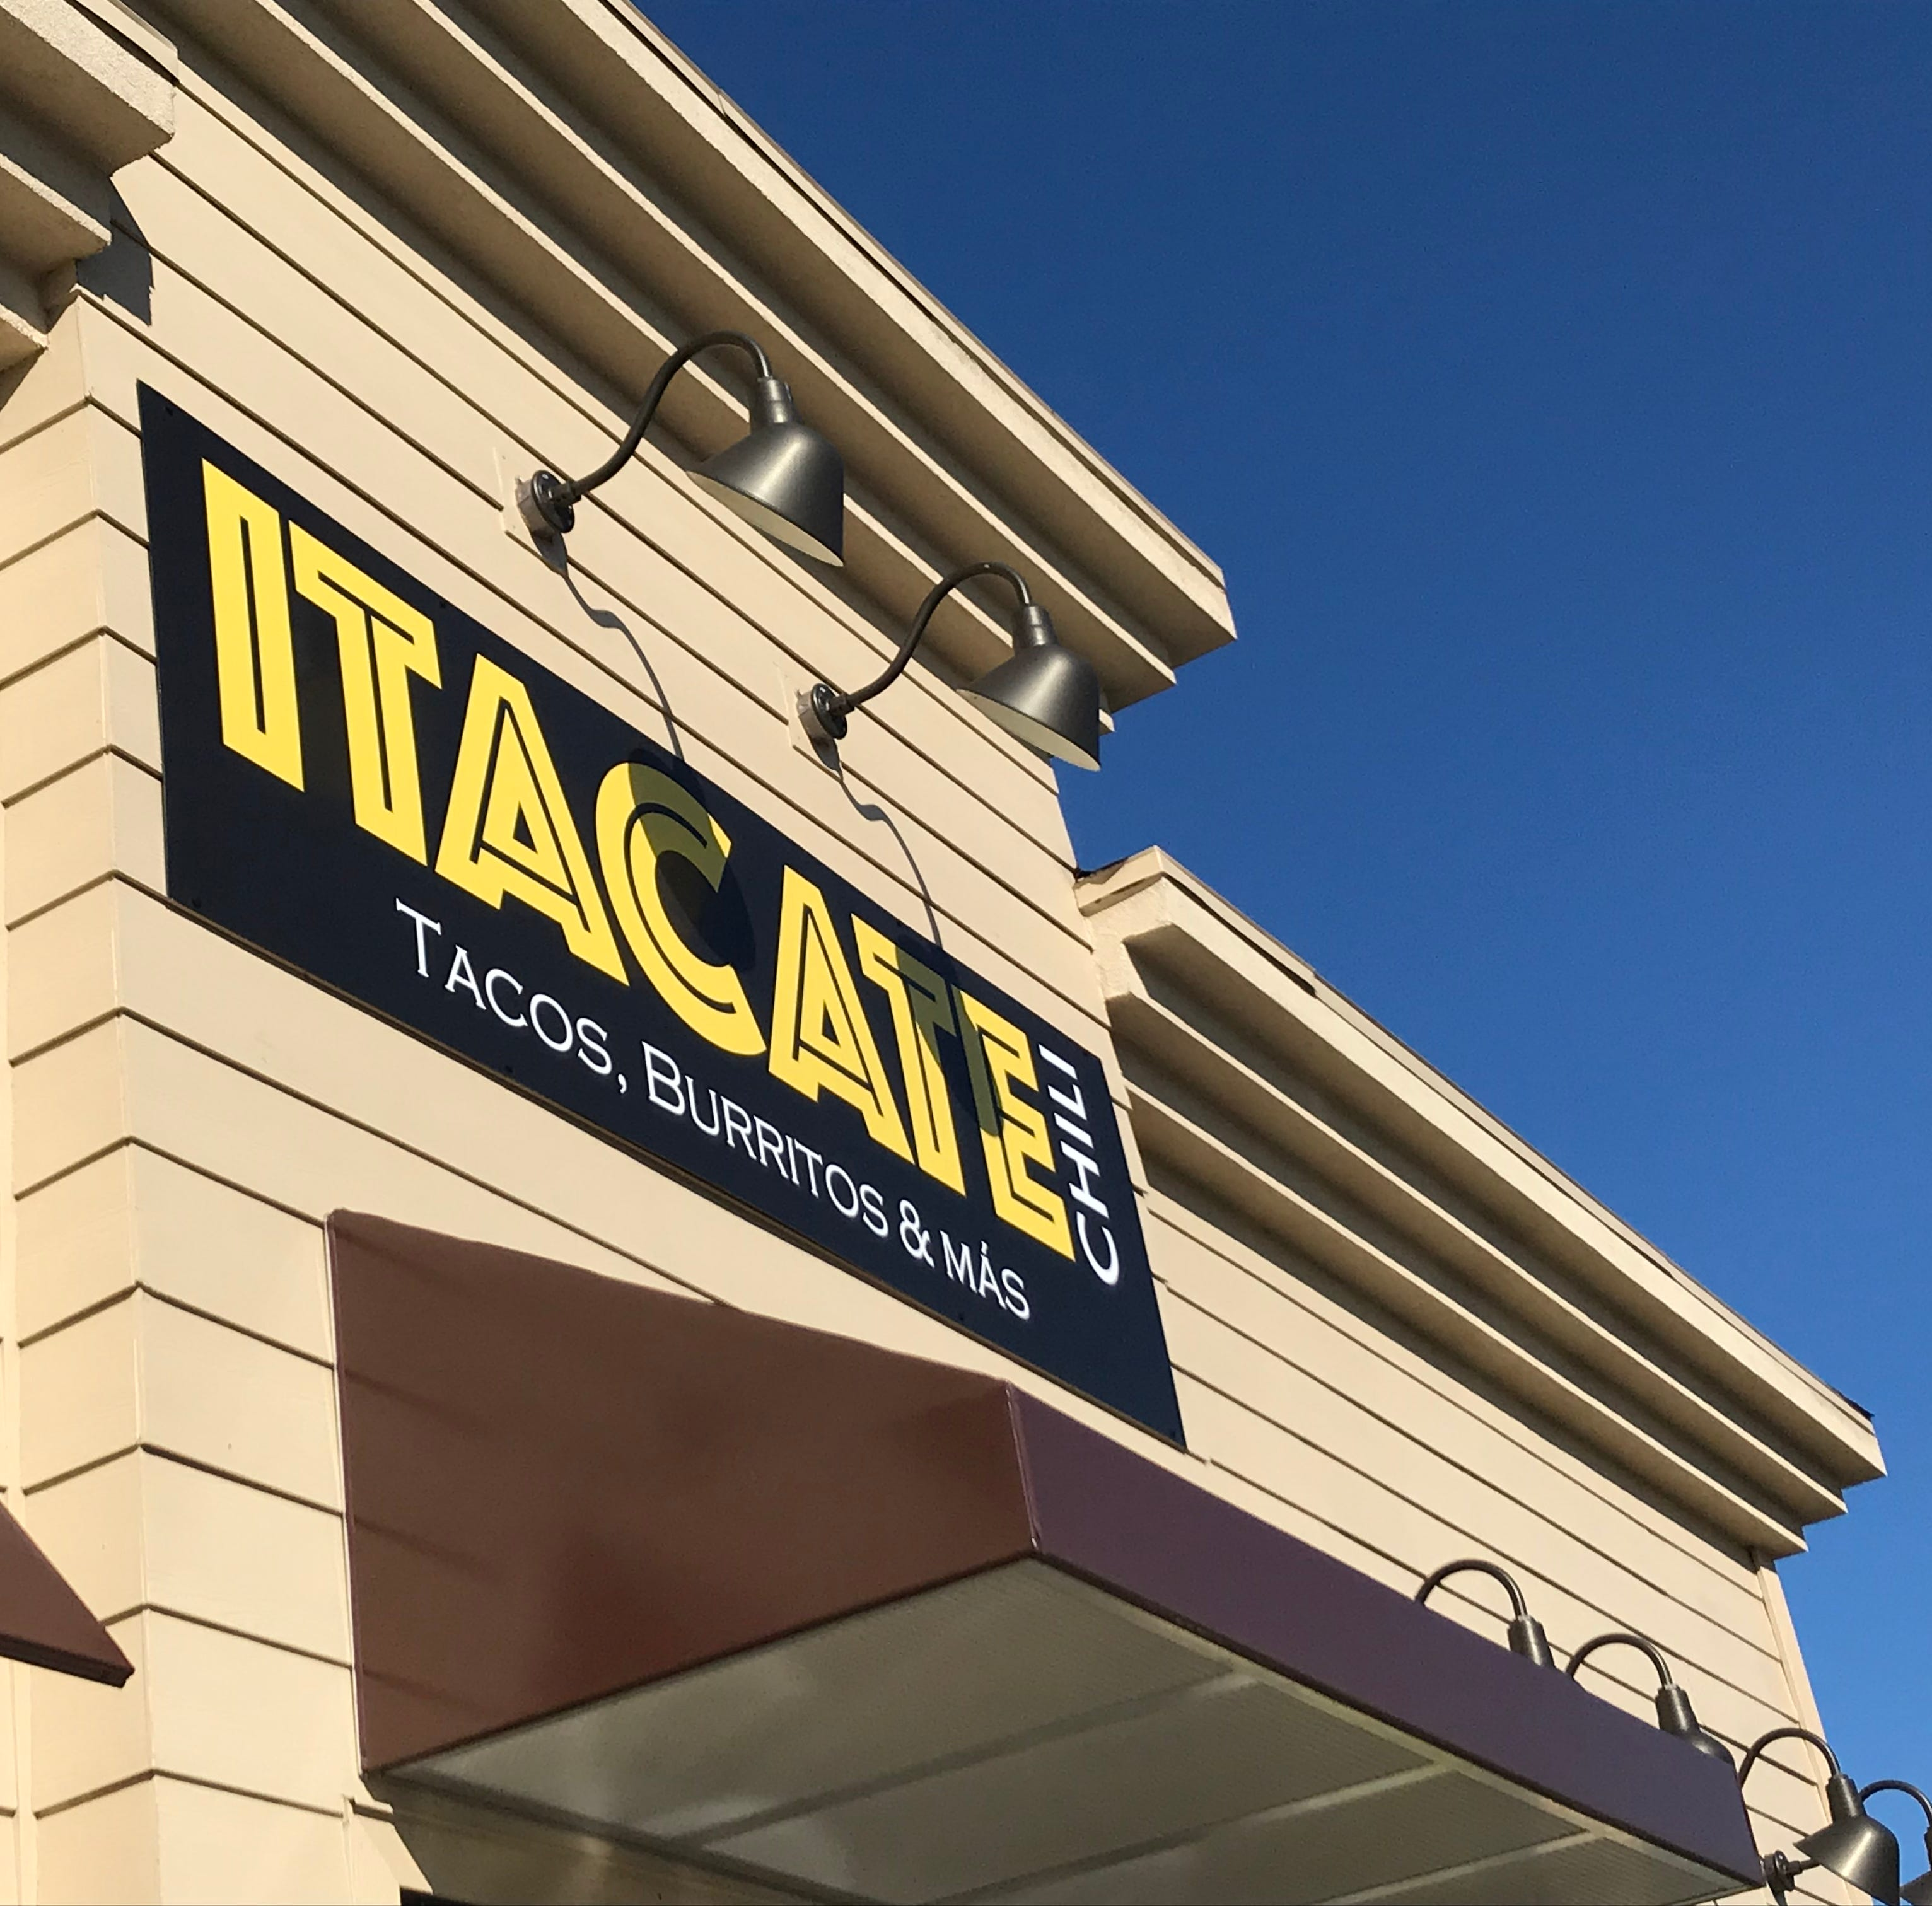 Itacate jumps on national trends, plans to open fast-casual Mexican restaurant in Chili